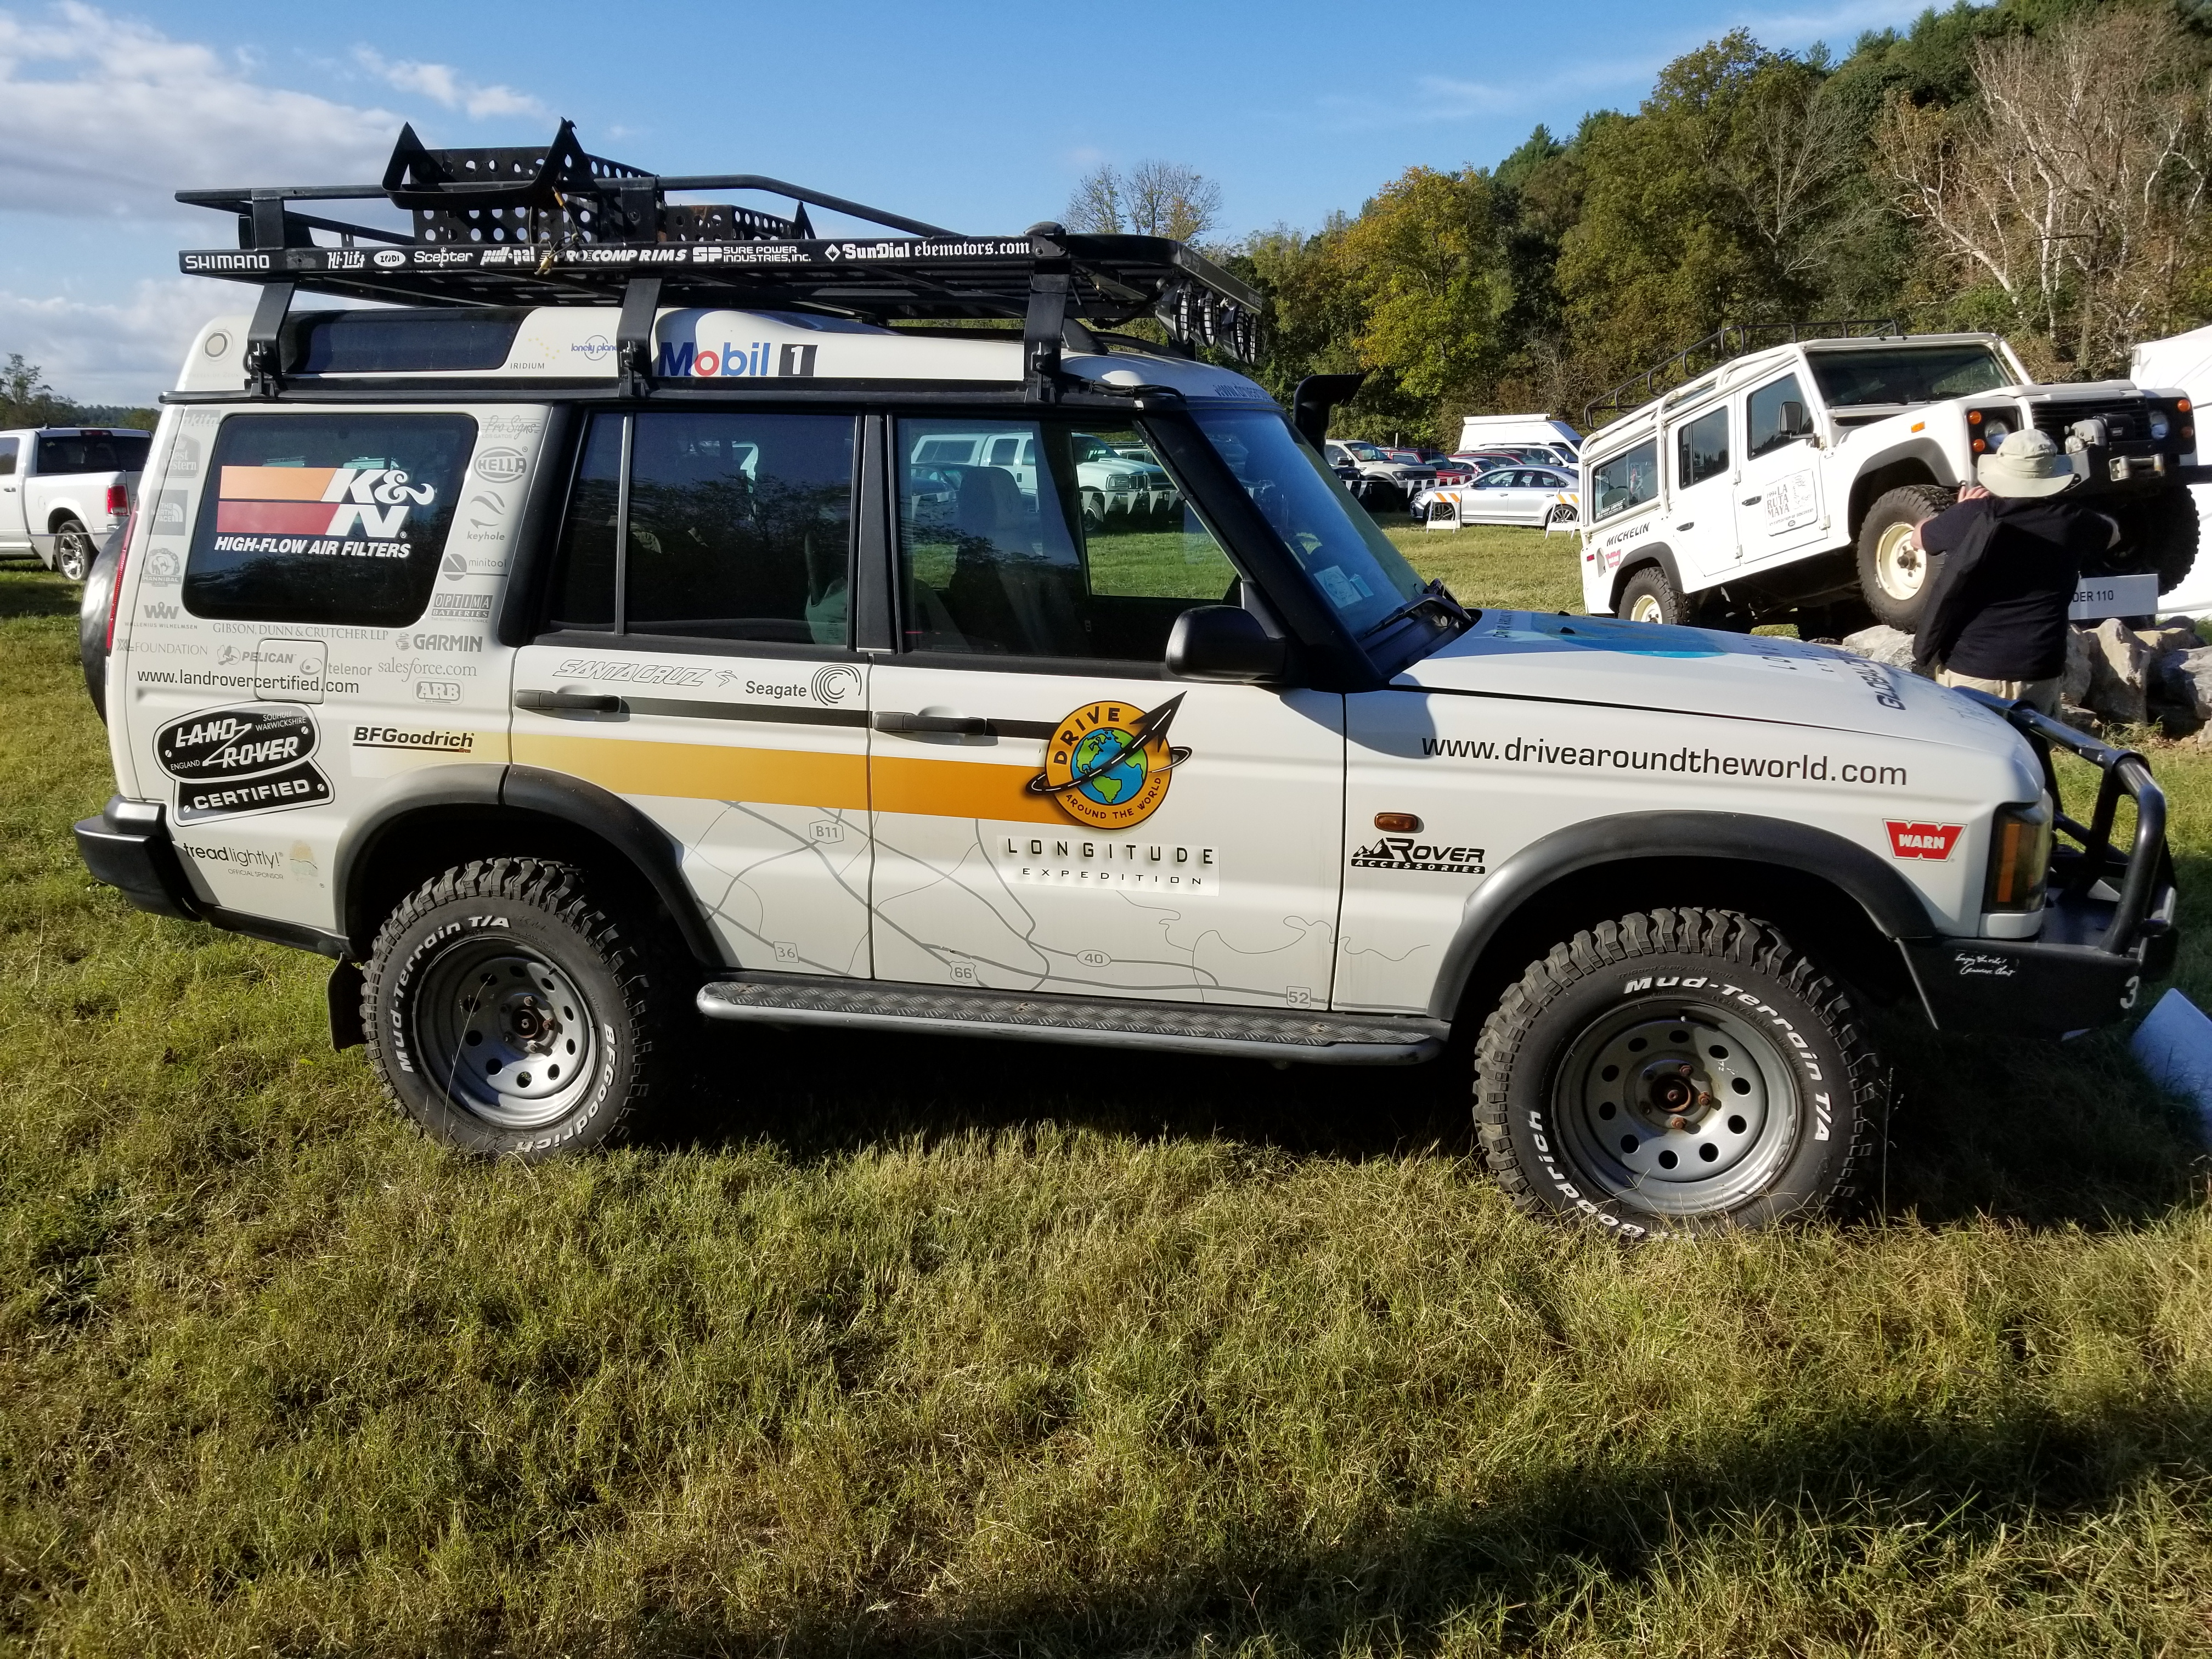 One of the modded Land Rovers at the booth